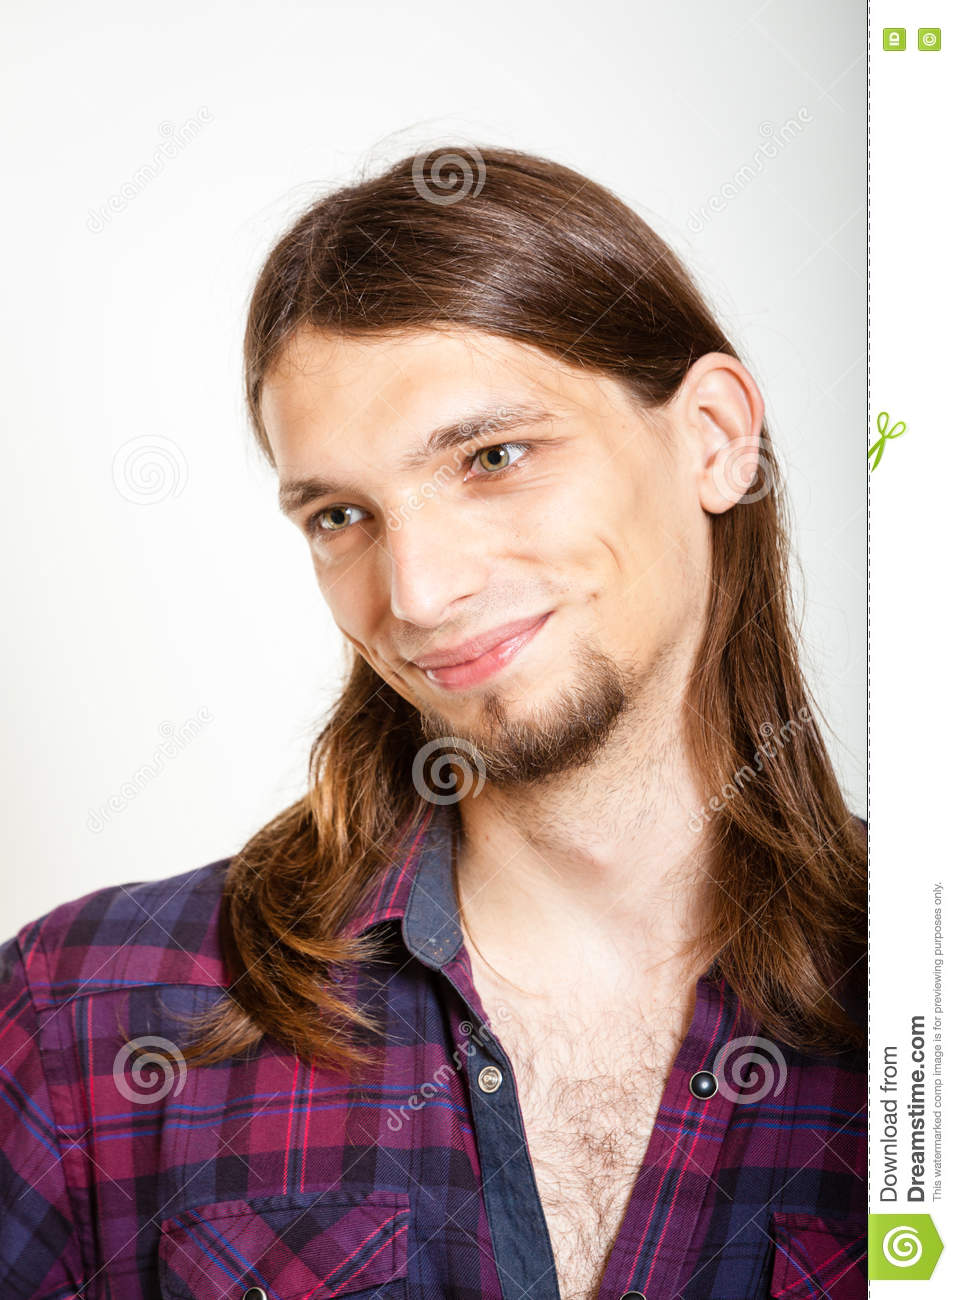 73293c55 Smiling Guy With Long Hairs. Stock Photo - Image of beard, calm ...